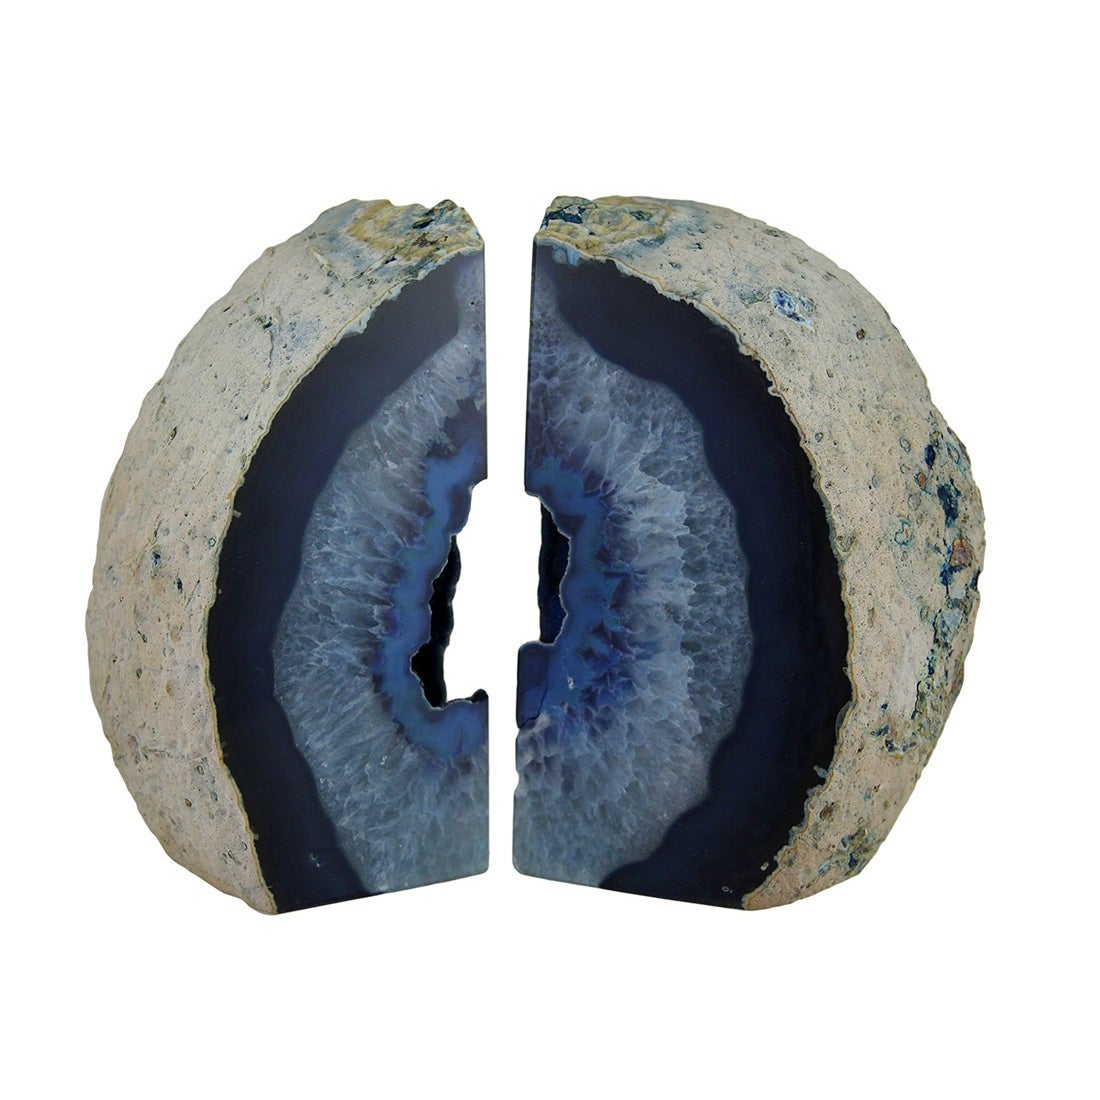 Large Polished Blue Brazilian Agate Geode Bookends 7 11 Pounds Overstock 18435854